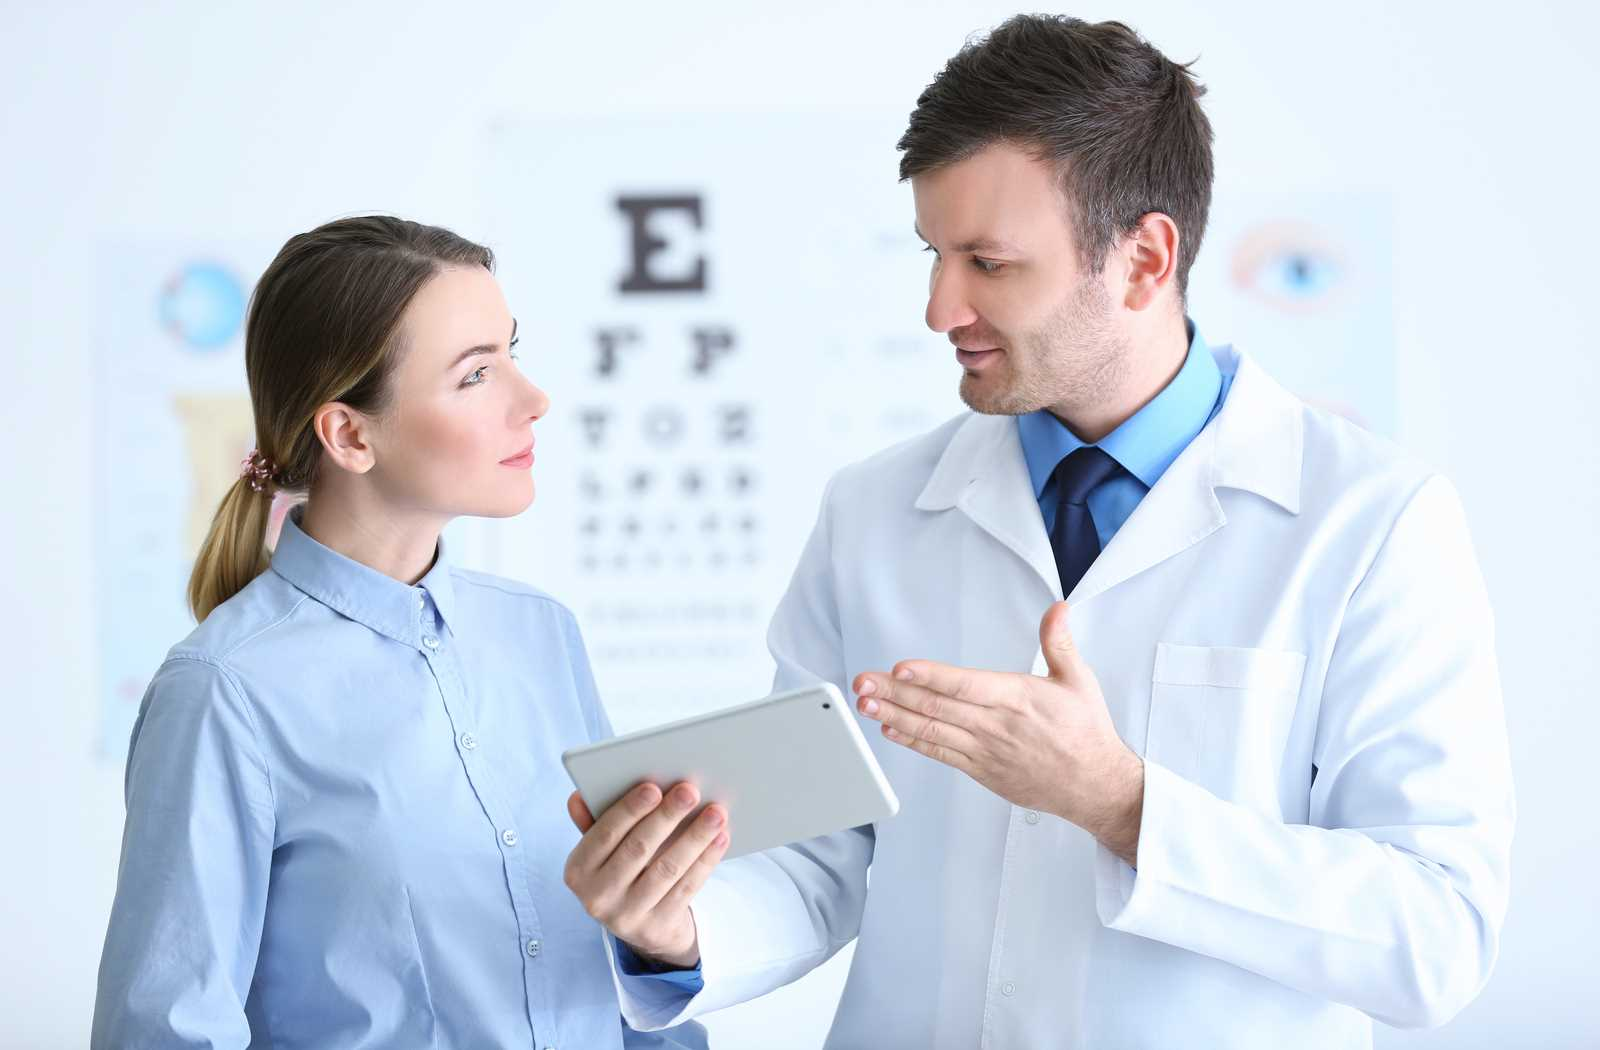 Optometrist explaining how to use eye drops to a patient